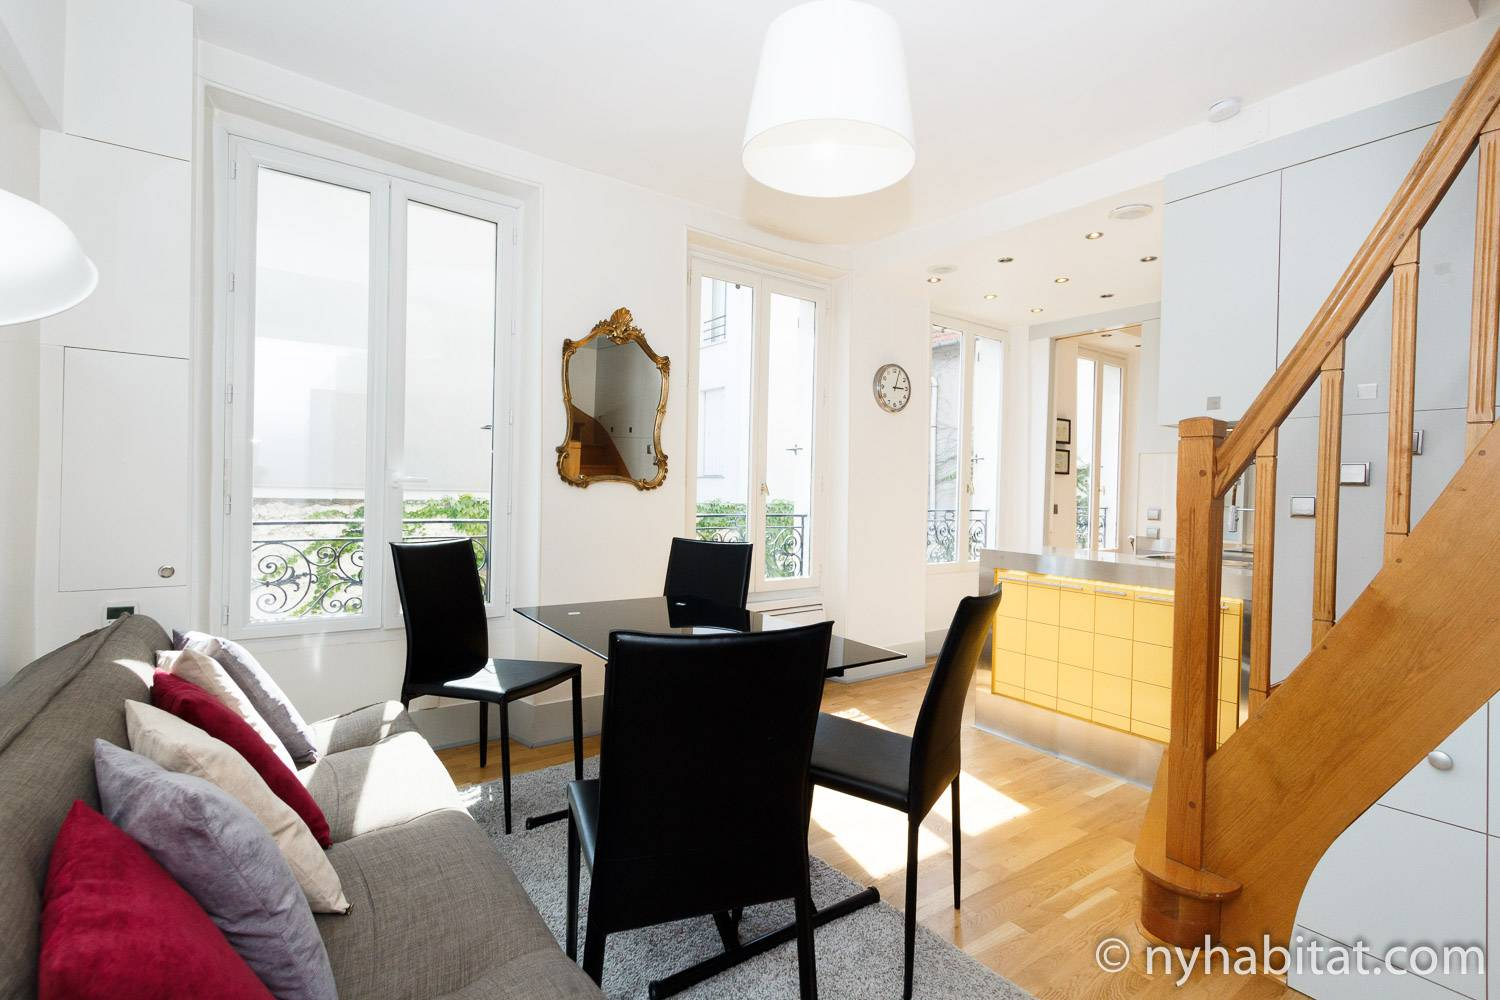 Image of the living room of furnished apartment PA-4335 in Belleville, Paris showing 4 win-dows and stairs going to the upper level.